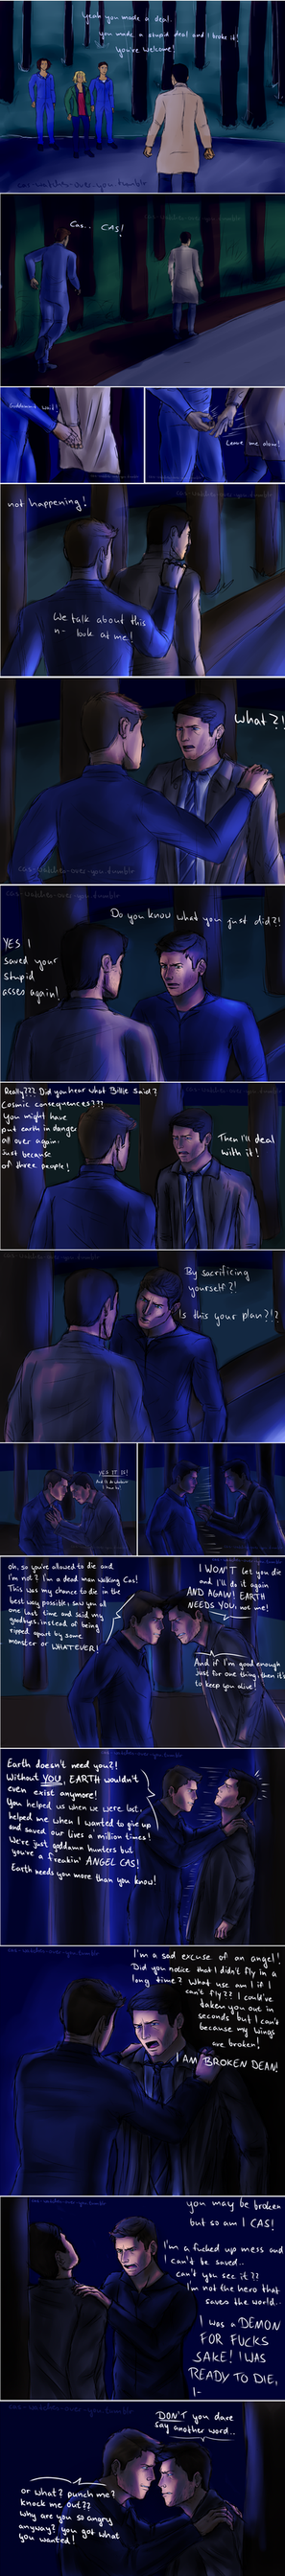 12x09 destiel comic part 1 by tiny-fallen-angel